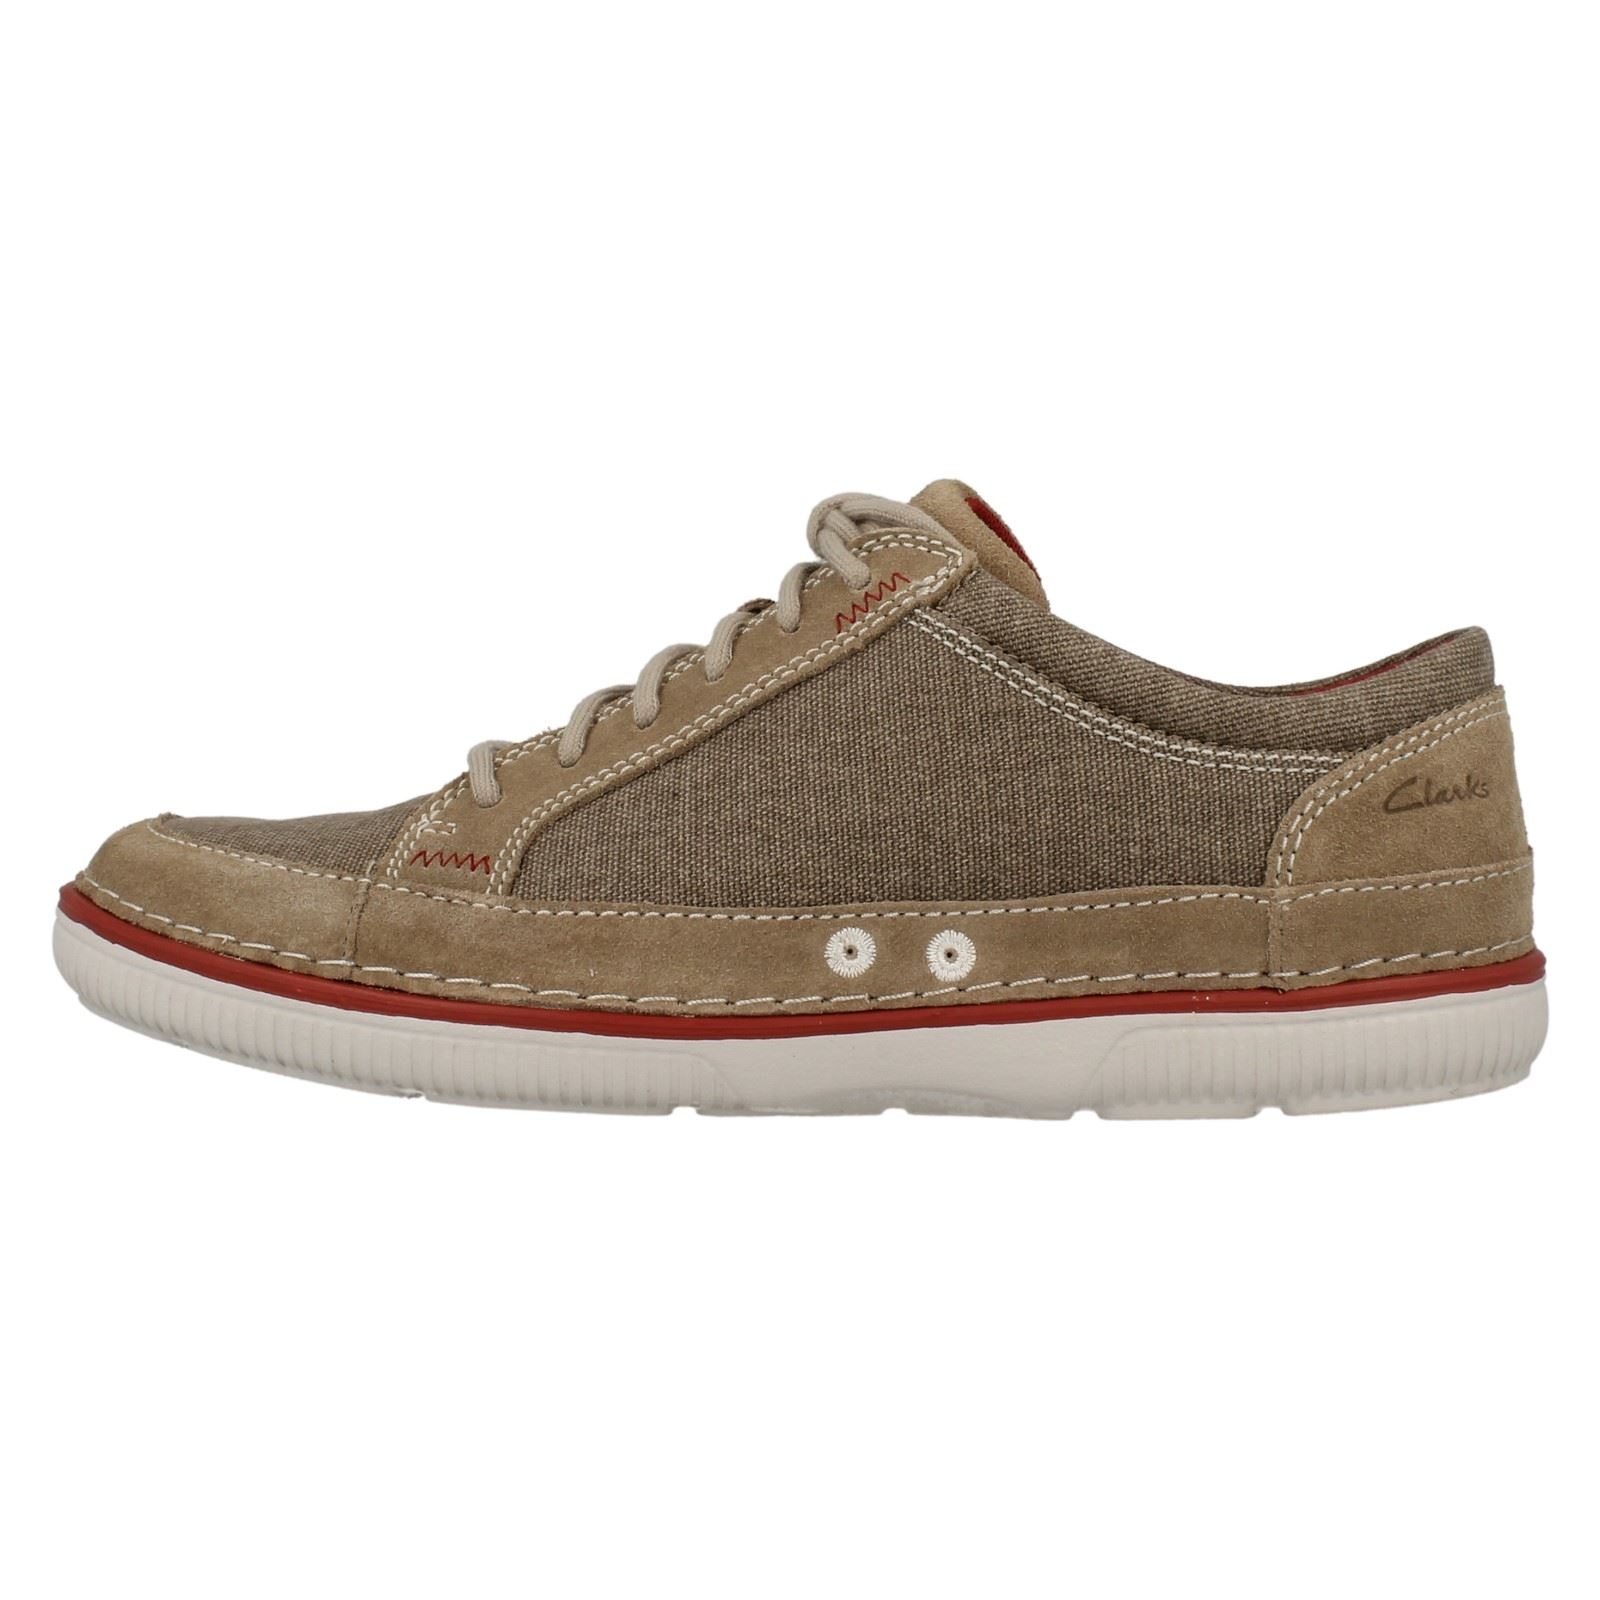 Mens Clarks Casual Shoes Sulley Ollie